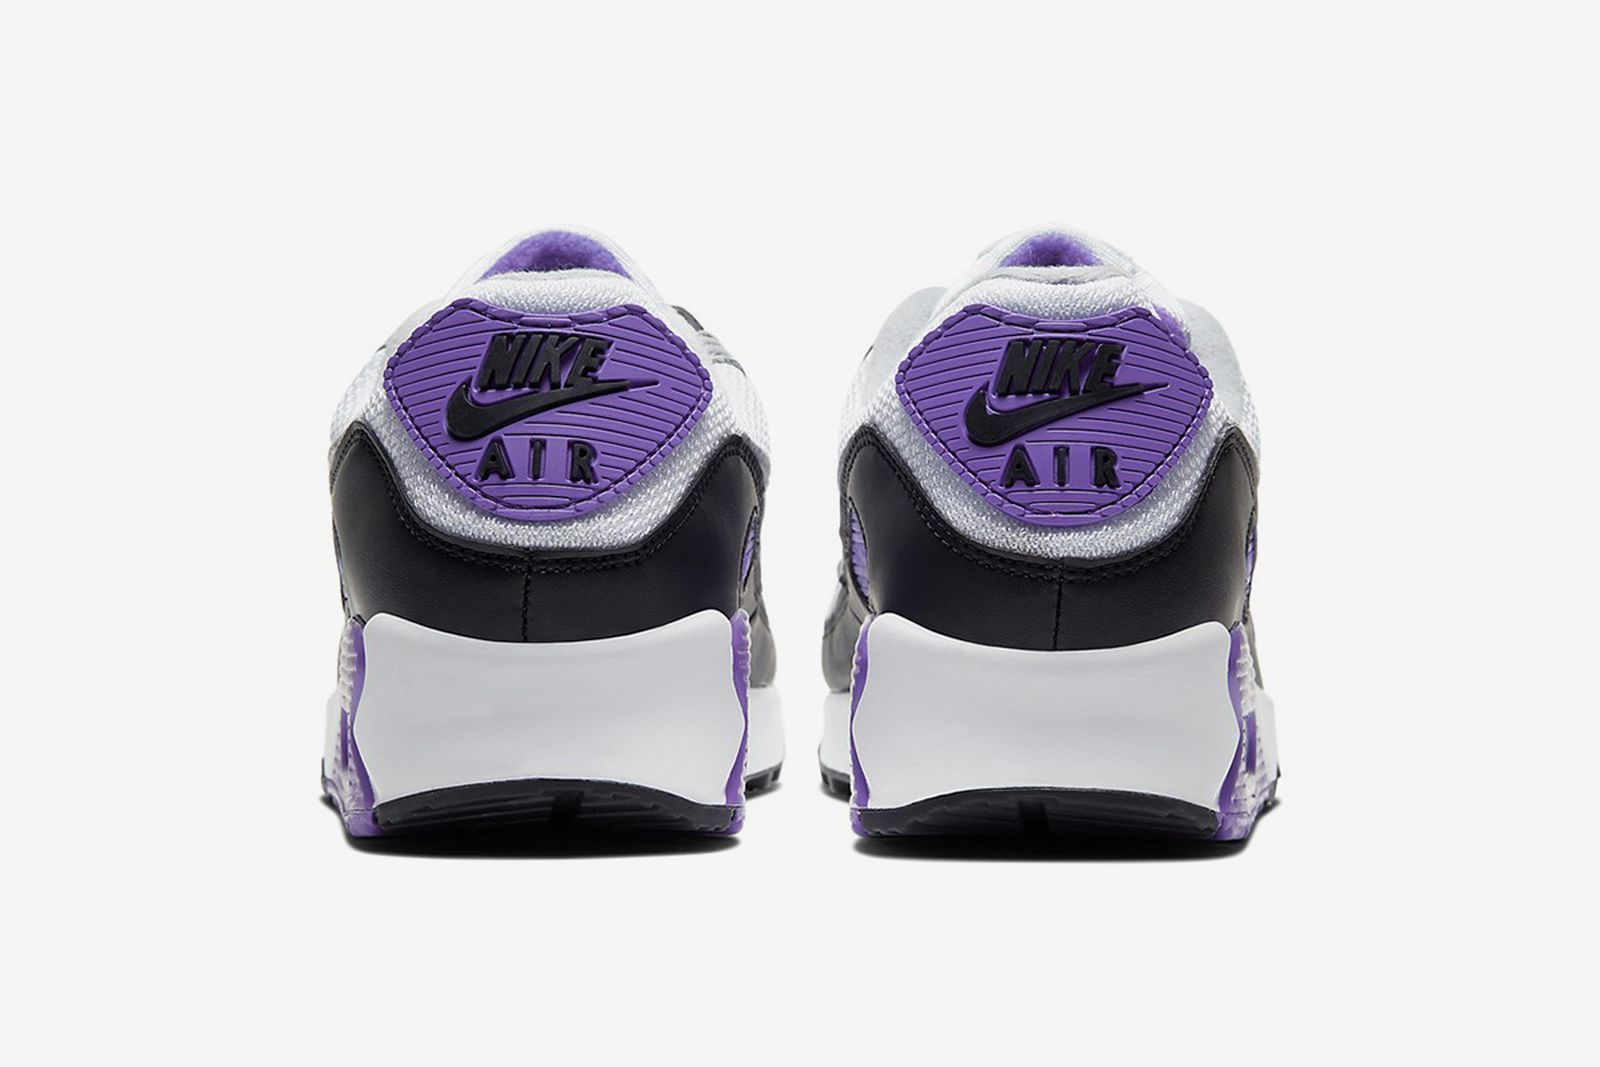 nike-air-max-90-30th-anniversary-colorways-release-date-price-1-10